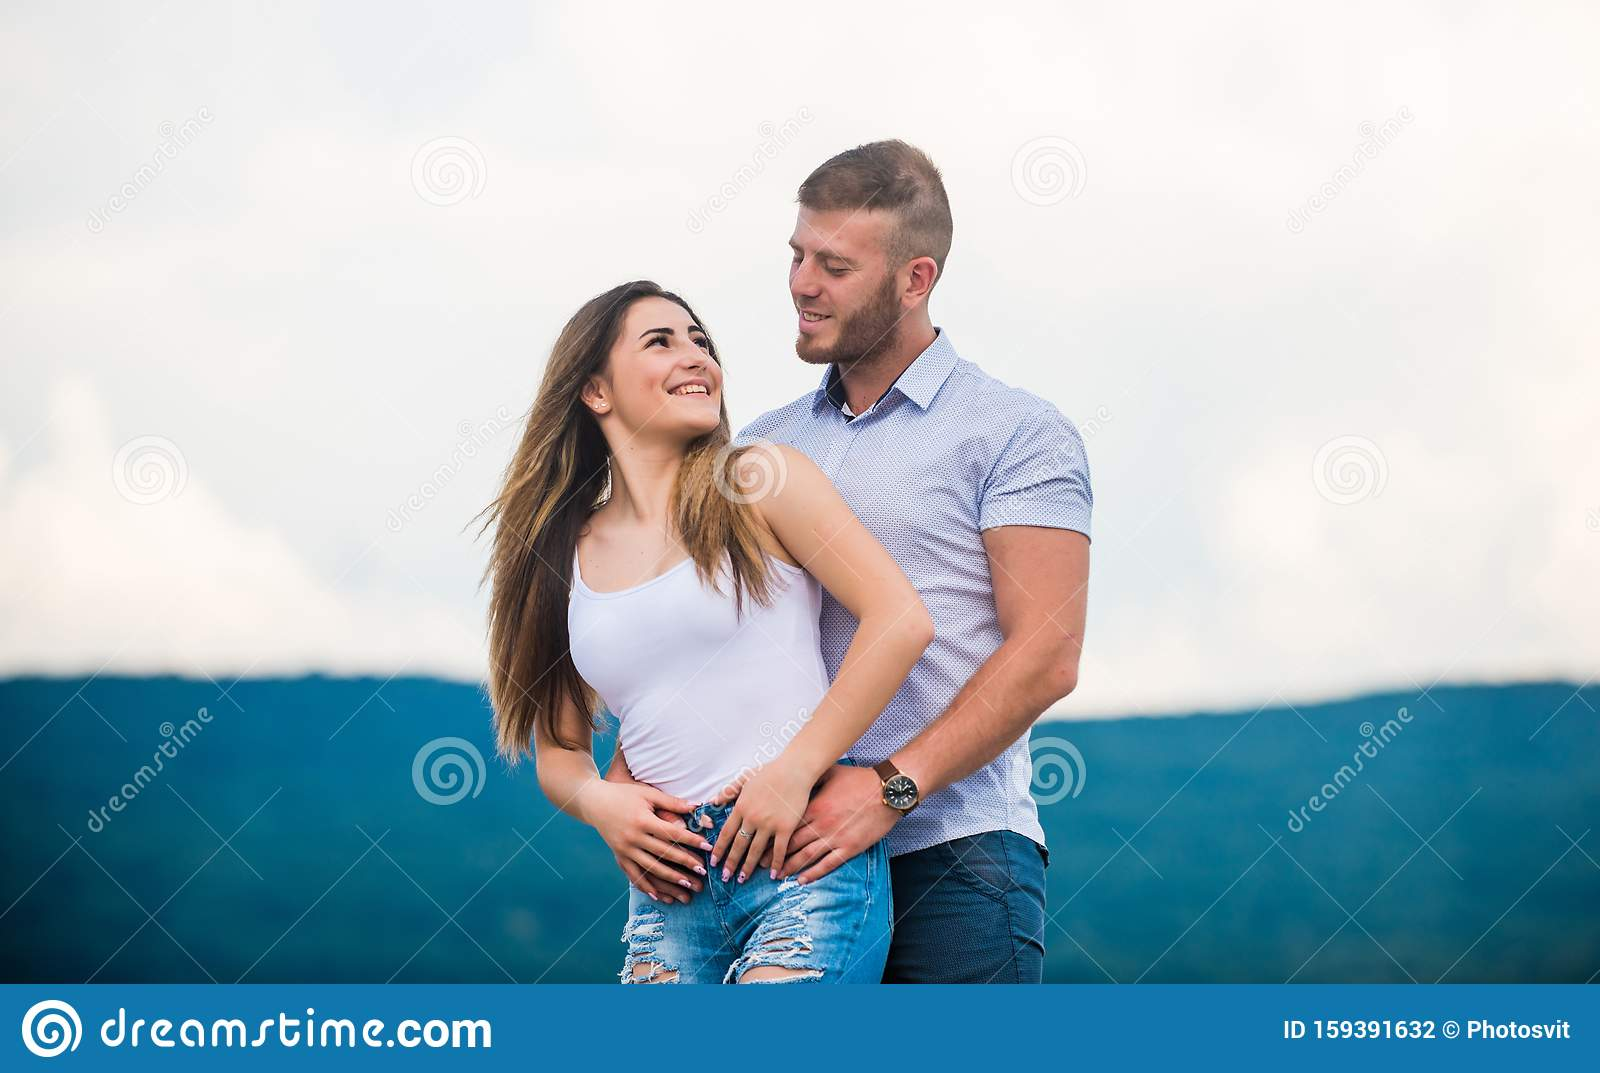 Cute And Sweet Relationship Couple In Love Couple Goals Concept